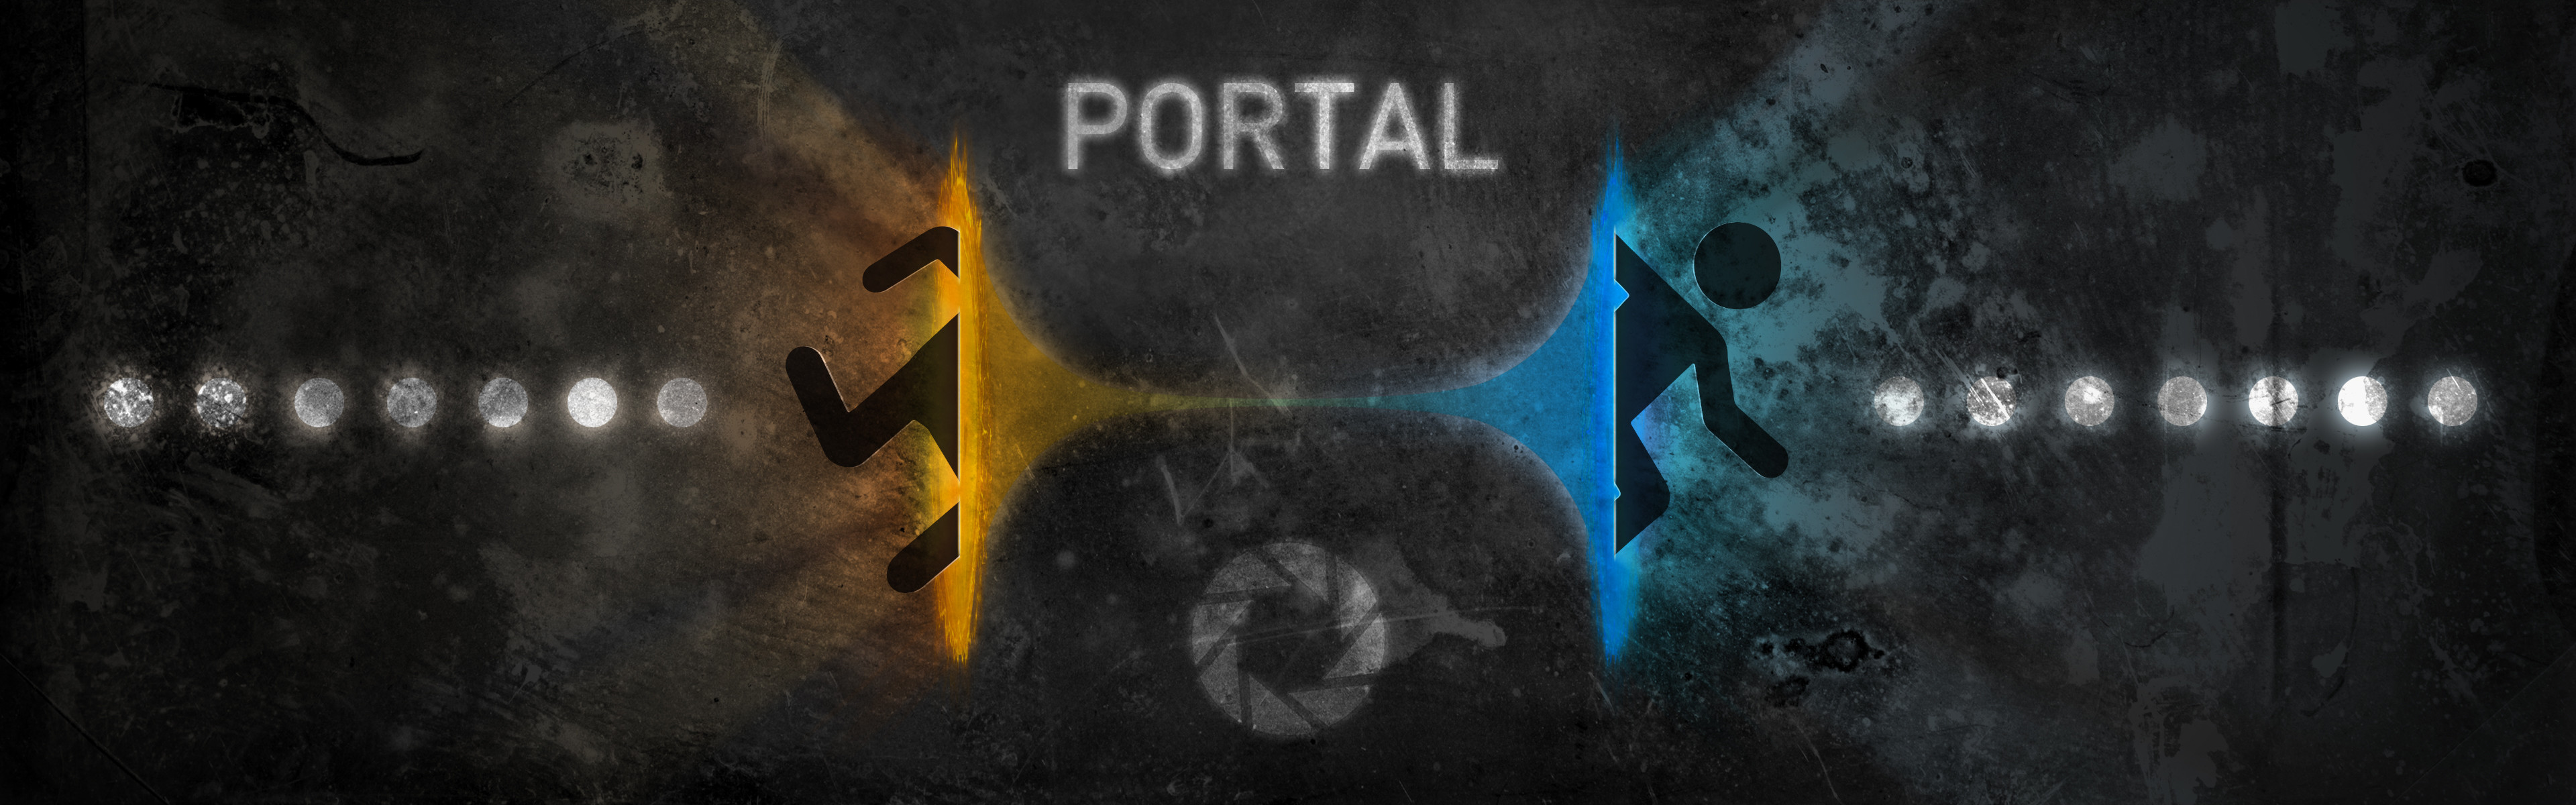 portal wallpaper dual screen (45+ images)